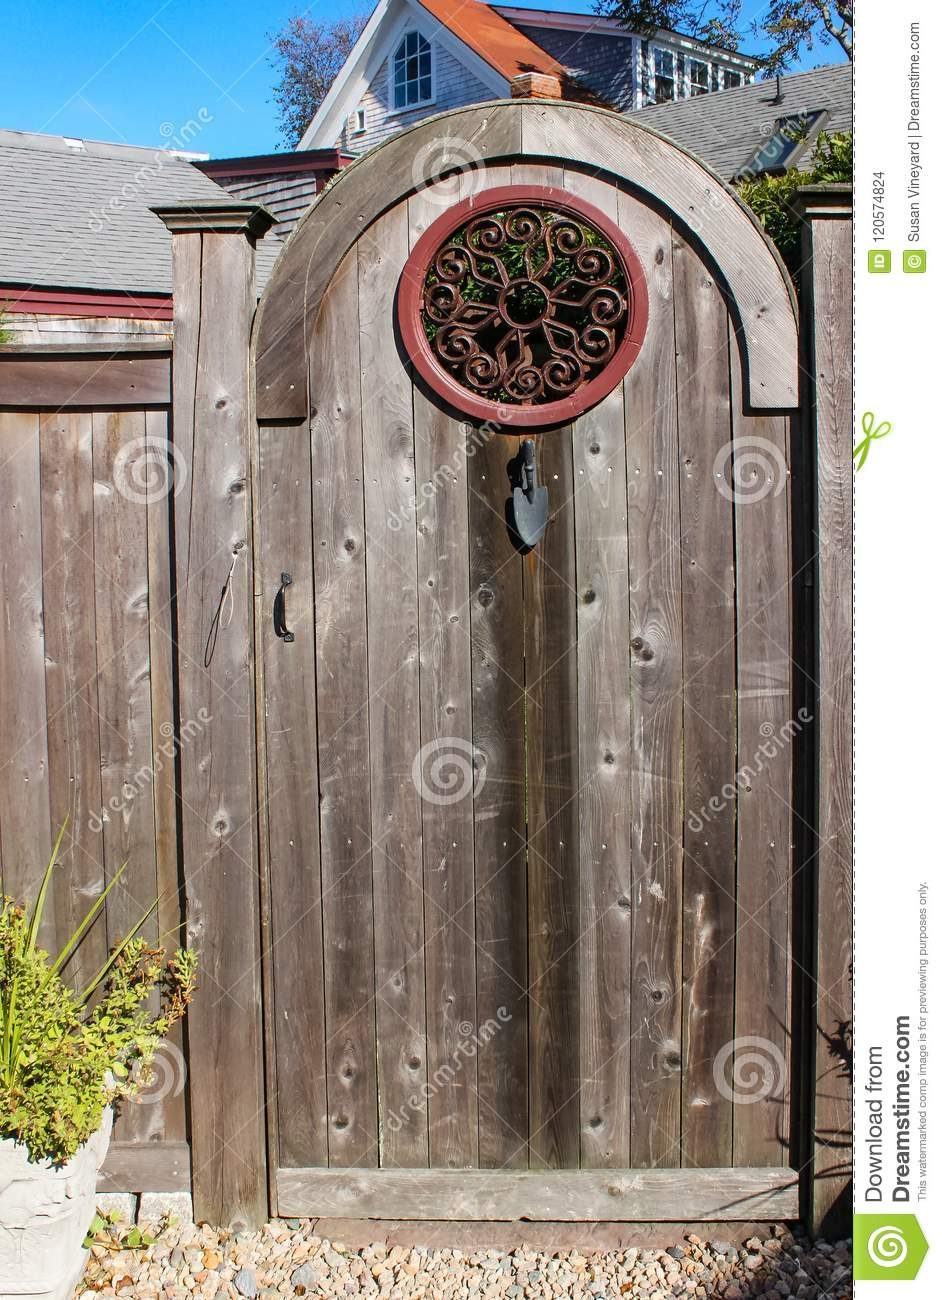 Close Up Of Rustic Wooden Gate With Decorative Round Wrought Iron